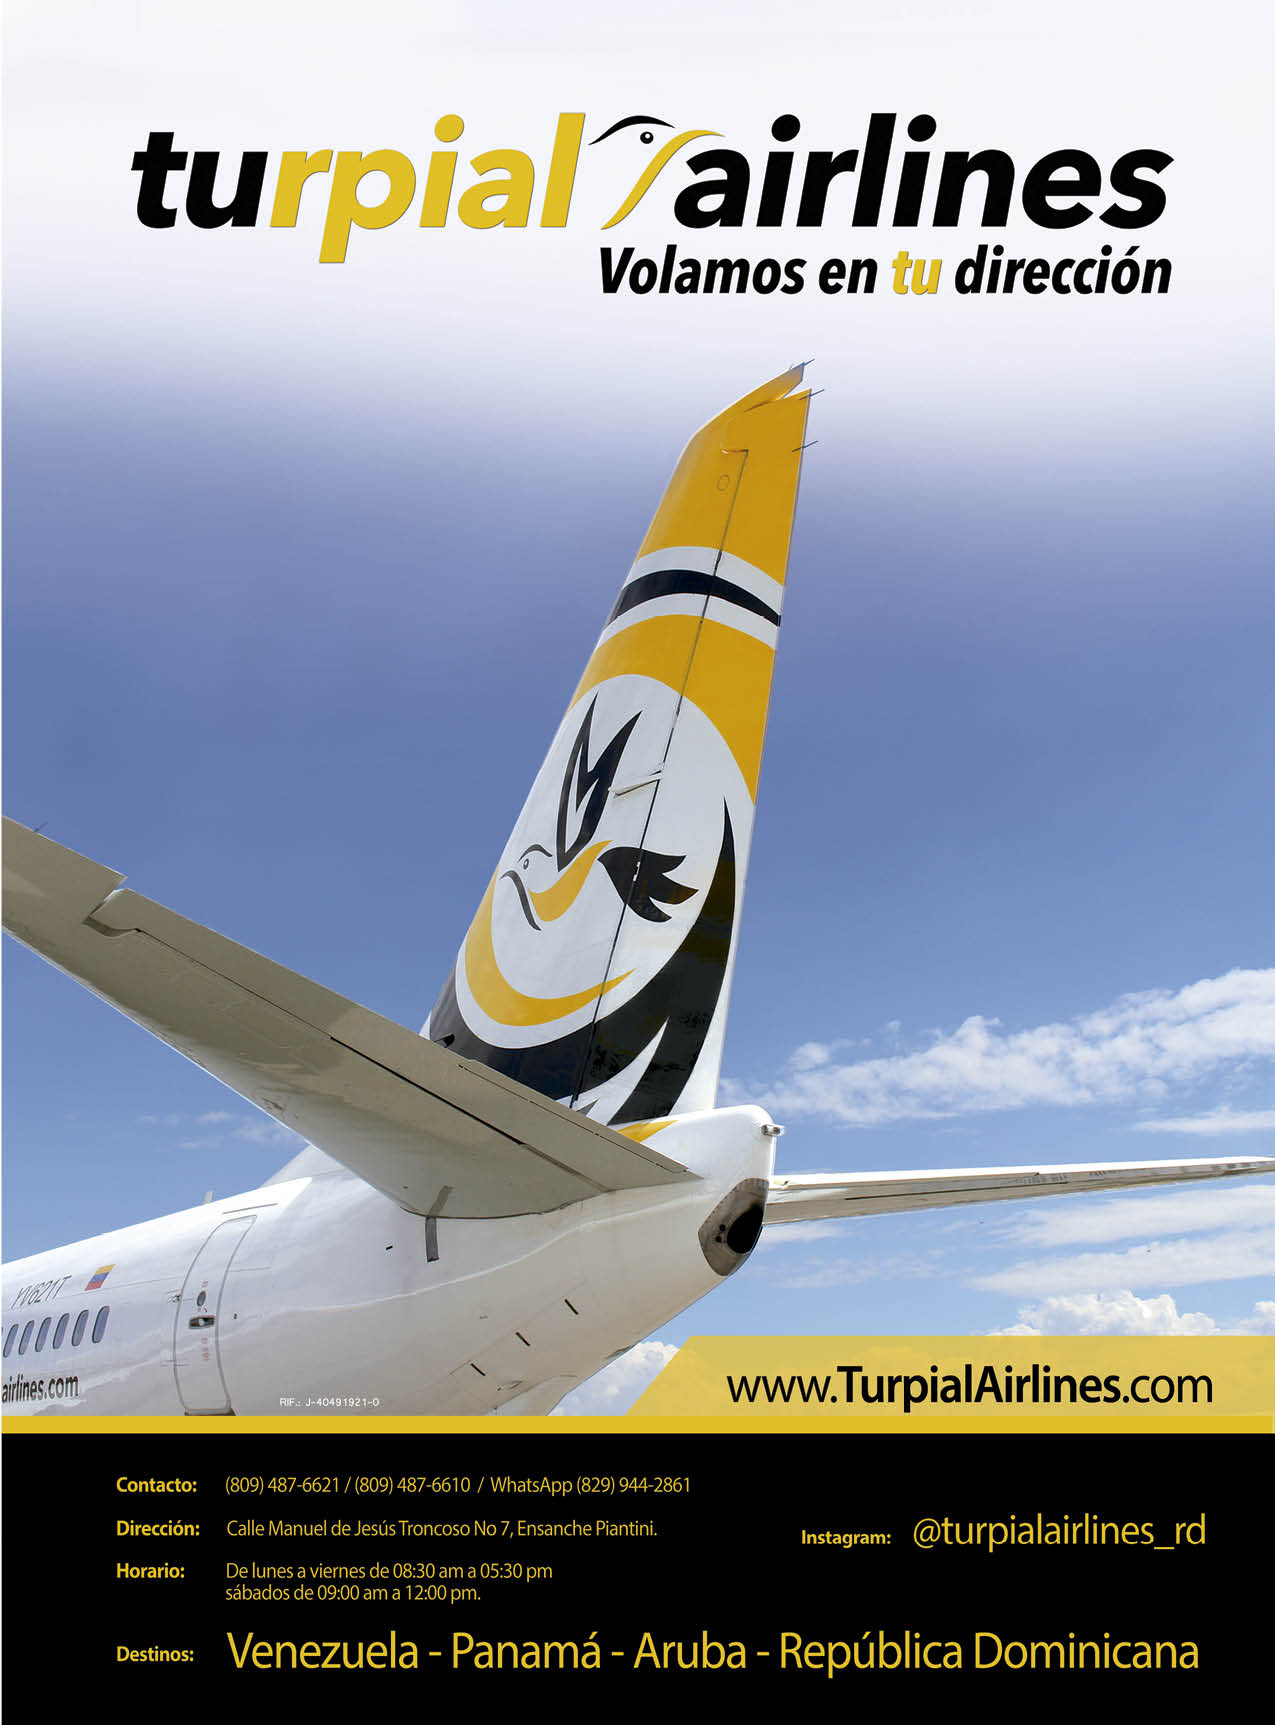 Turpial Airlines